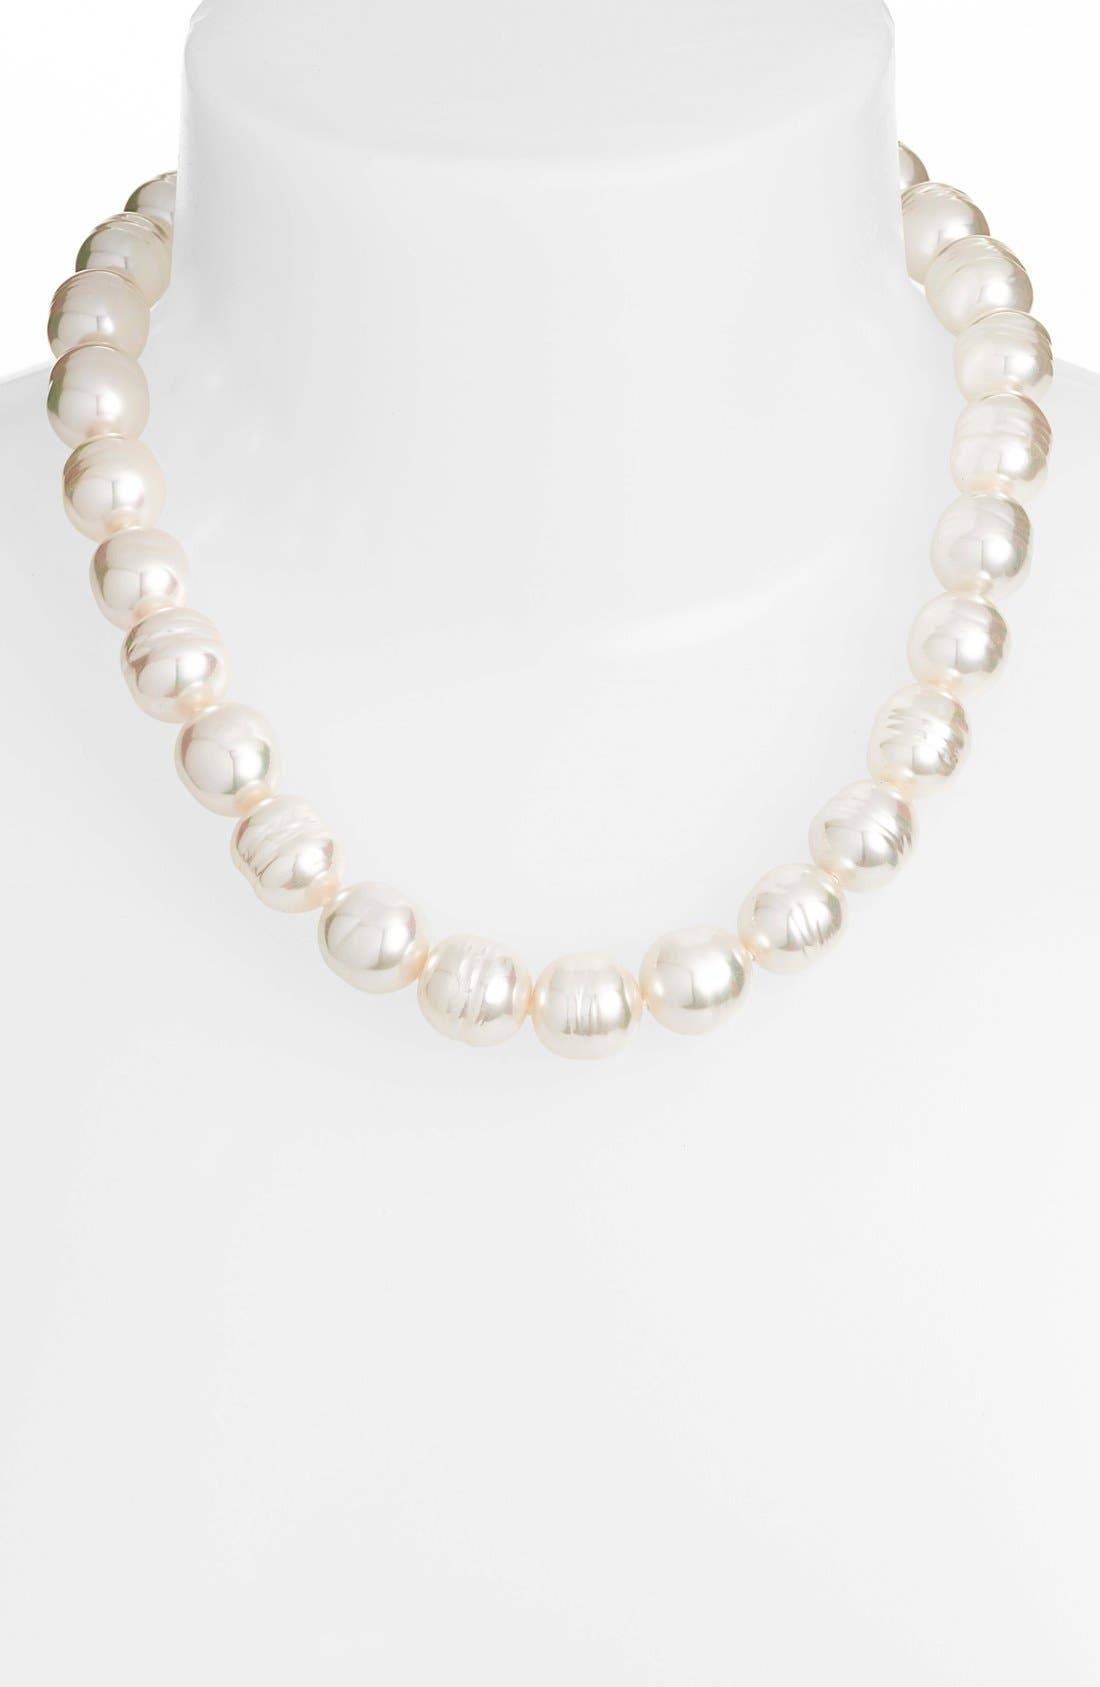 MAJORICA 14mm Baroque Simulated Pearl Strand Necklace